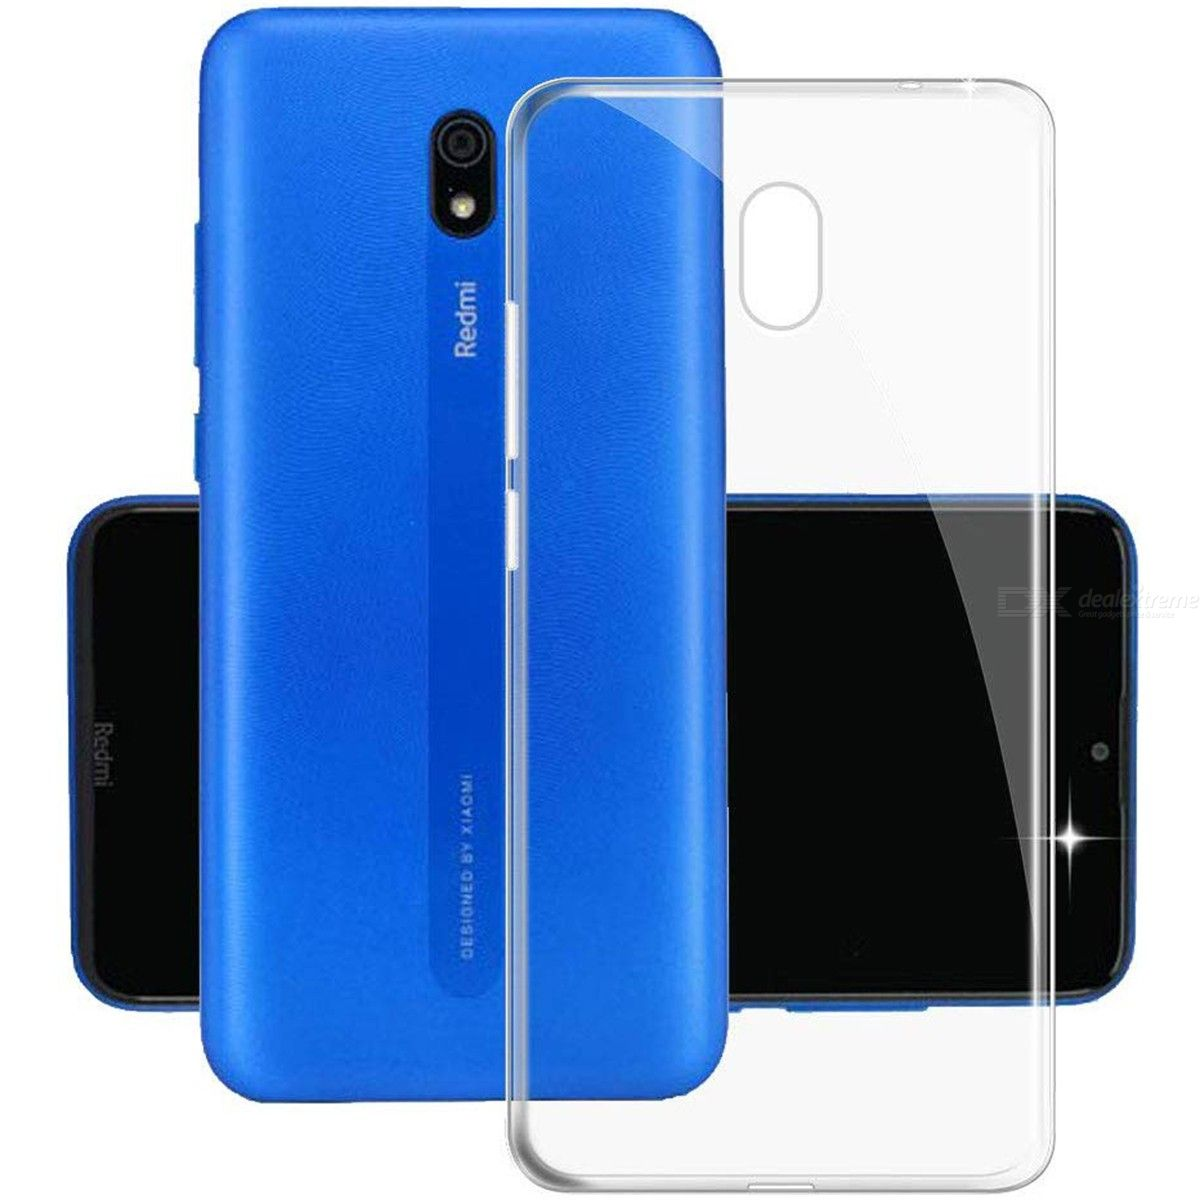 ASLING Ultra Thin Soft TPU Back Cover Protective Phone Case for Xiaomi Redmi 8A